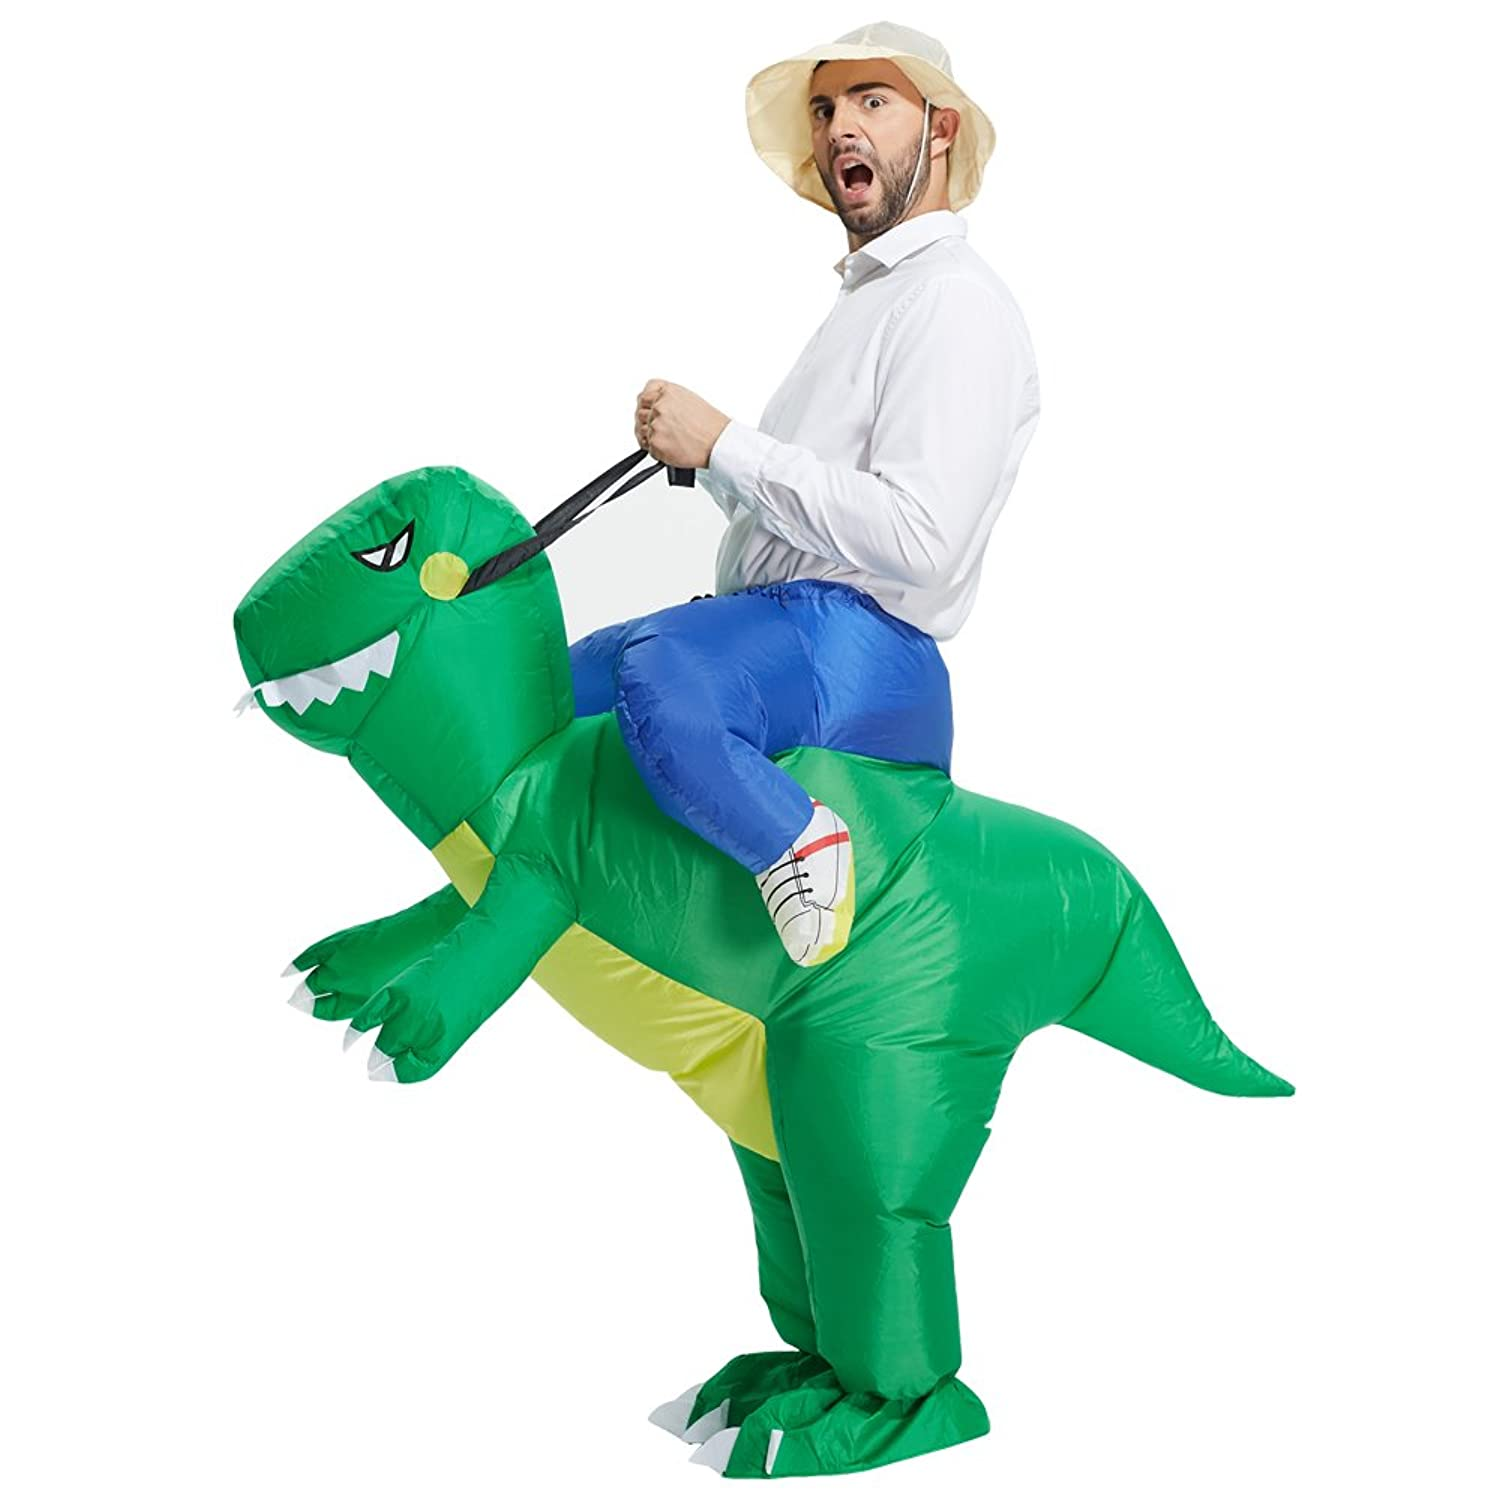 amazoncom toloco inflatable dinosaur t rex adult fancy dress costume green clothing - Green Halloween Dress